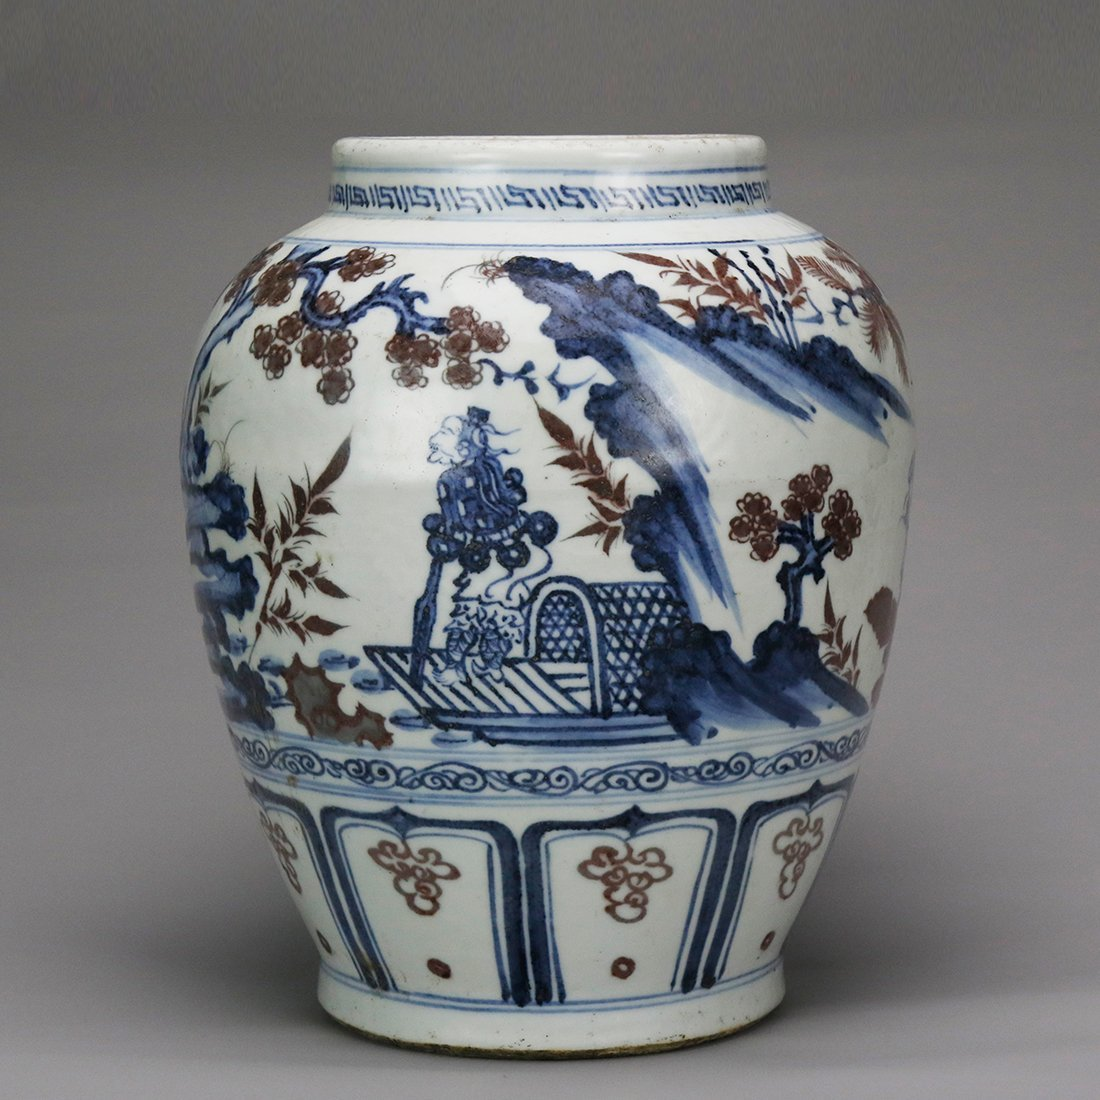 China 15 Century blue and white glazed red ceramic pot